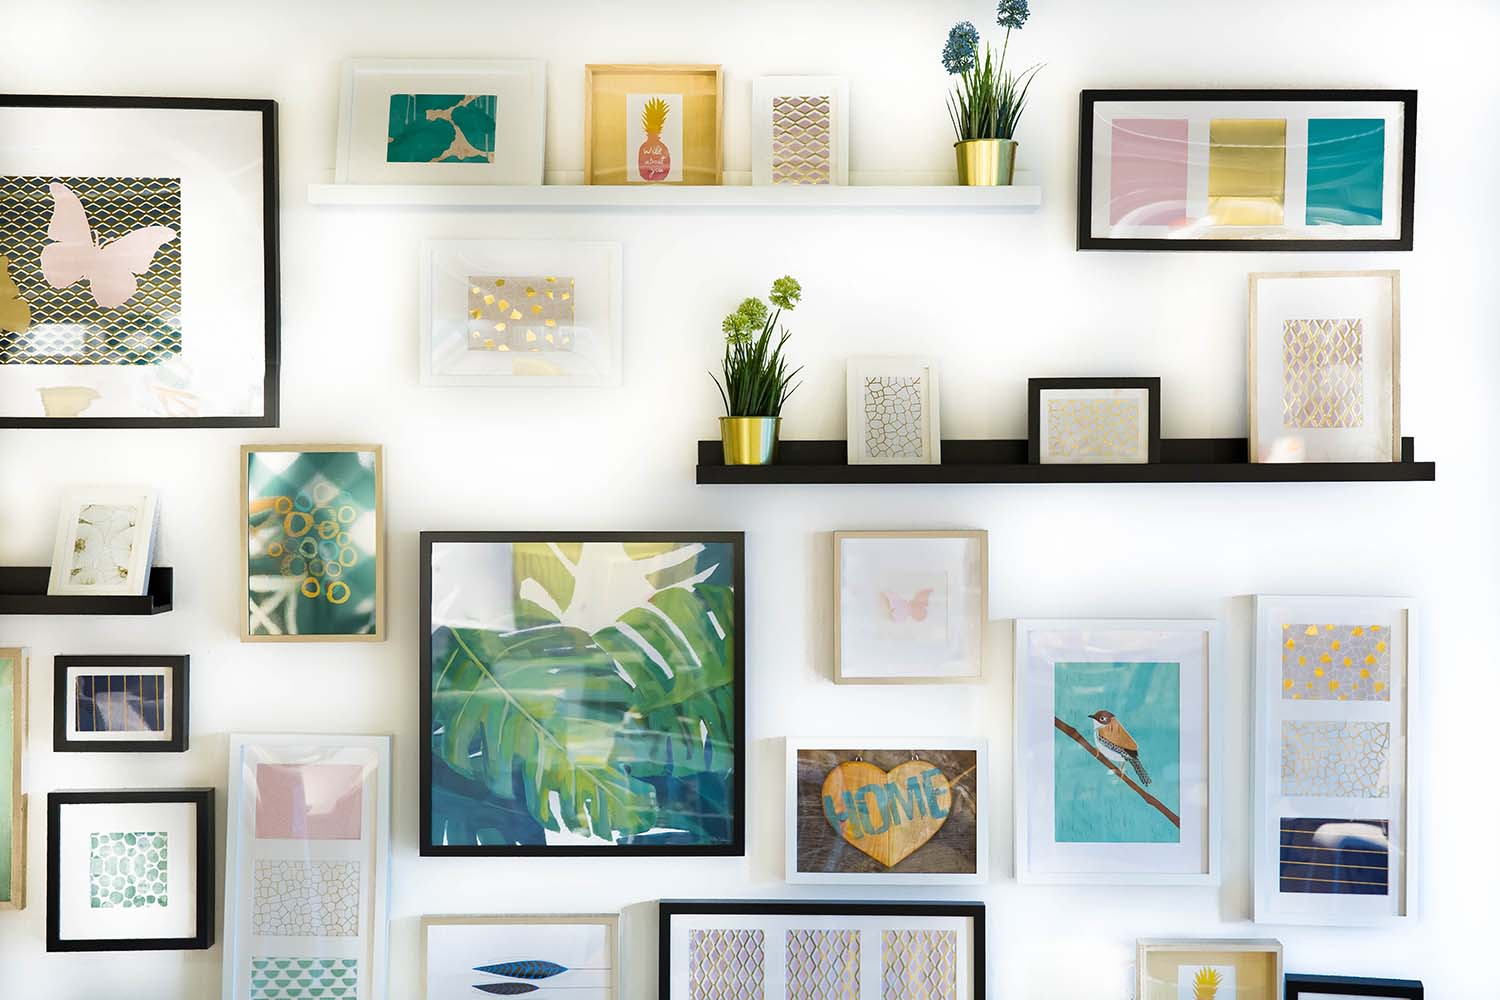 5 Incredible Benefits of Artwork in Your Home